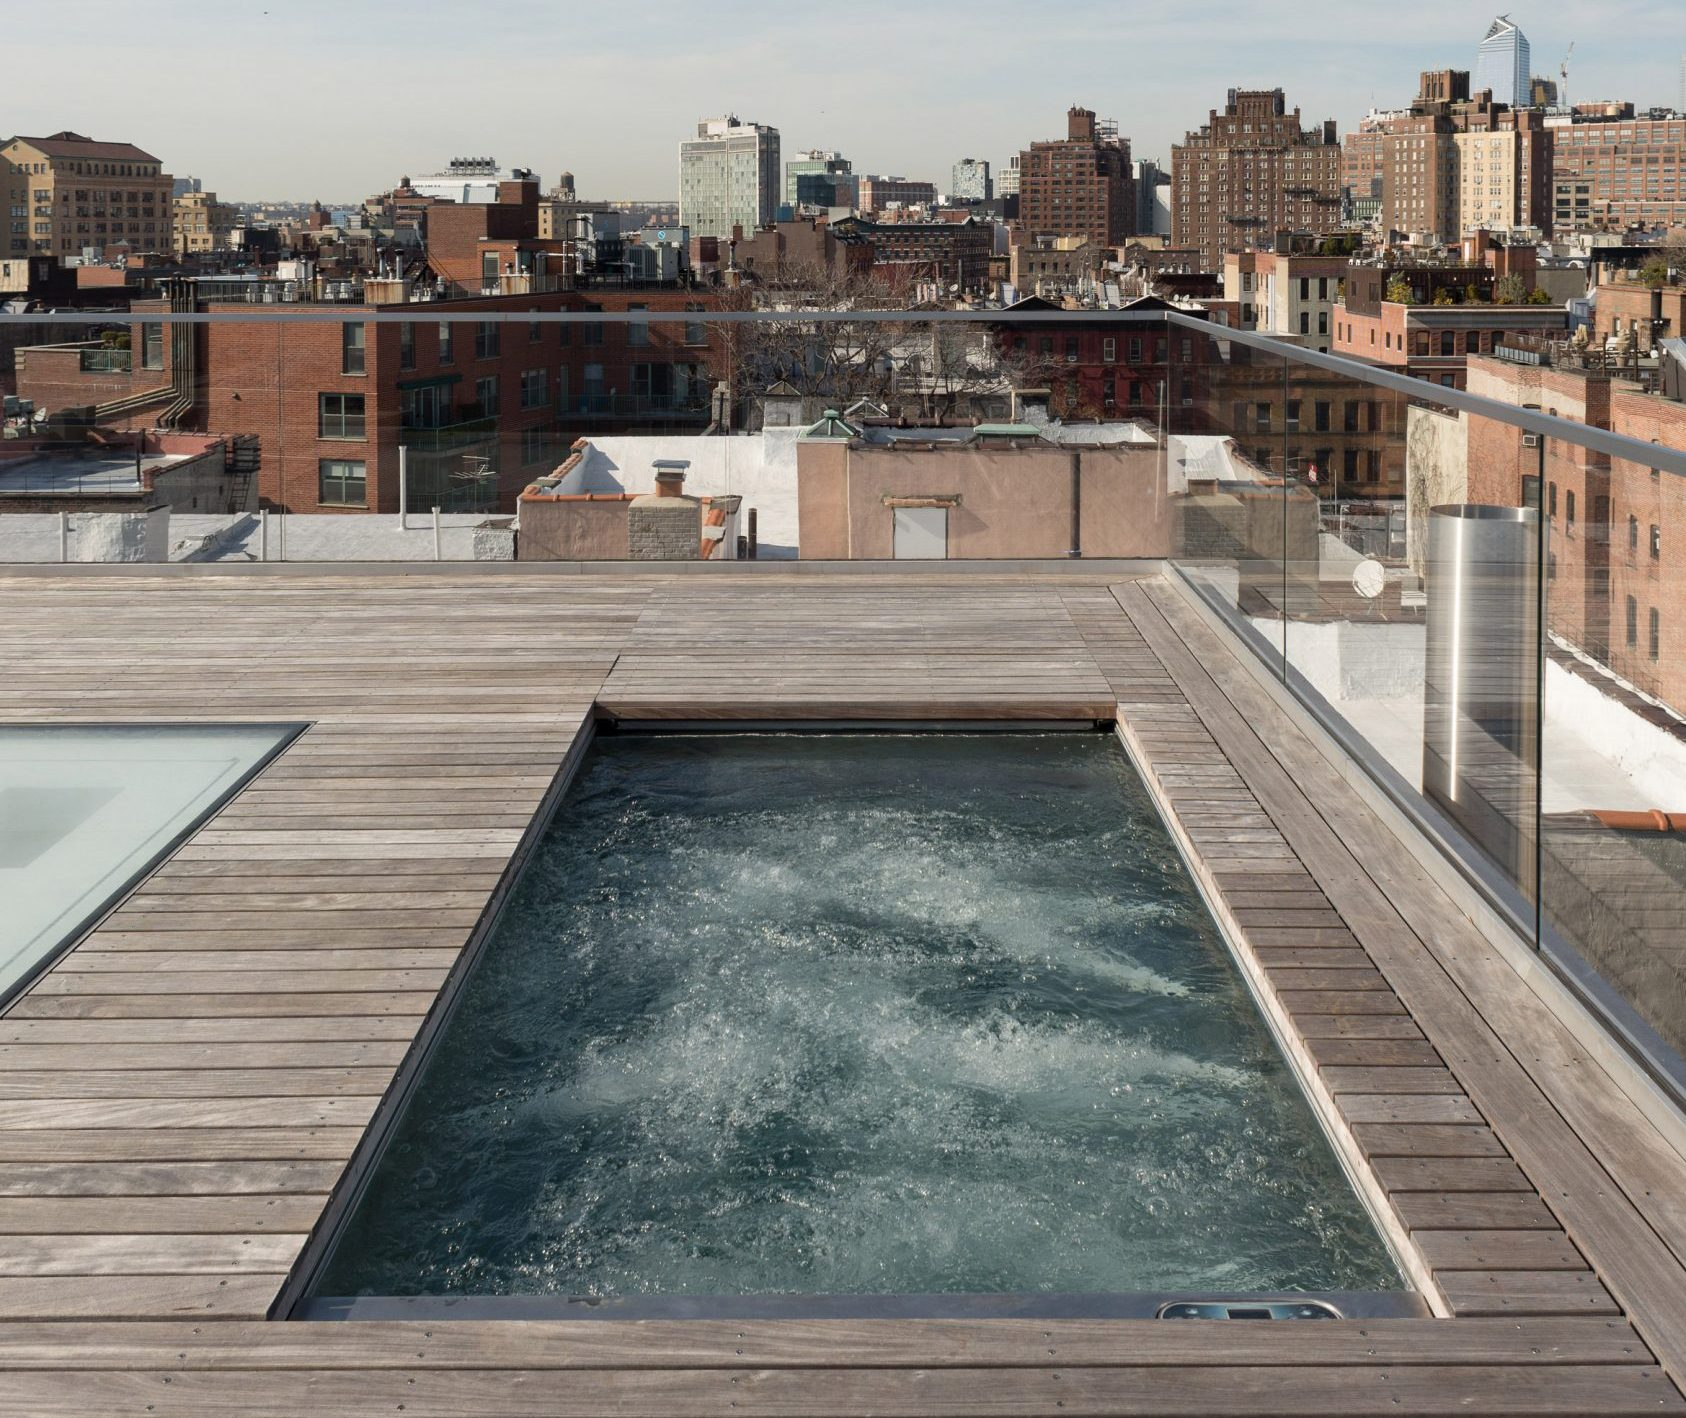 Tbd Design Studio Gave This West Village Penthouse A Complete Overhaul And A Private Rooftop Pool 6sqft